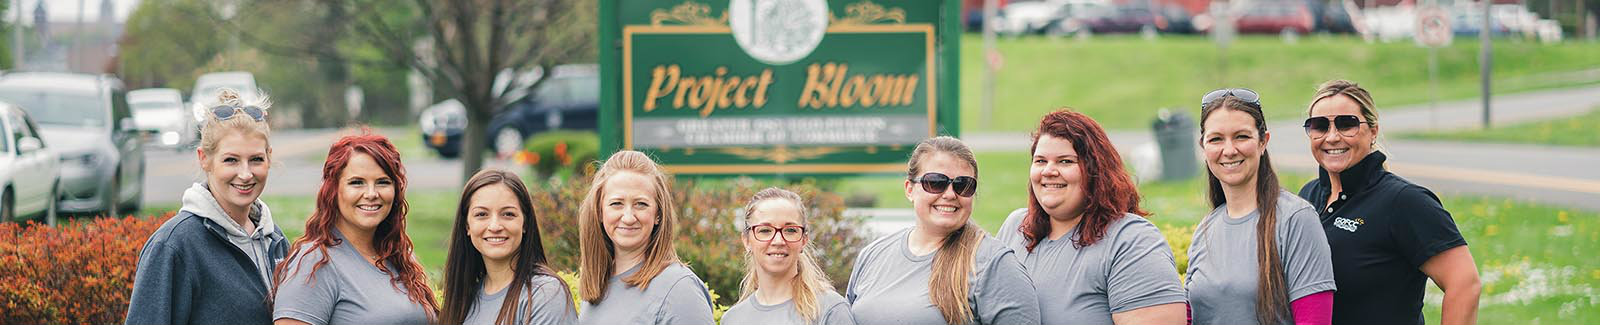 A group of Pathfinder employees together at a volunteer event for Project Bloom, smiling for a picture.